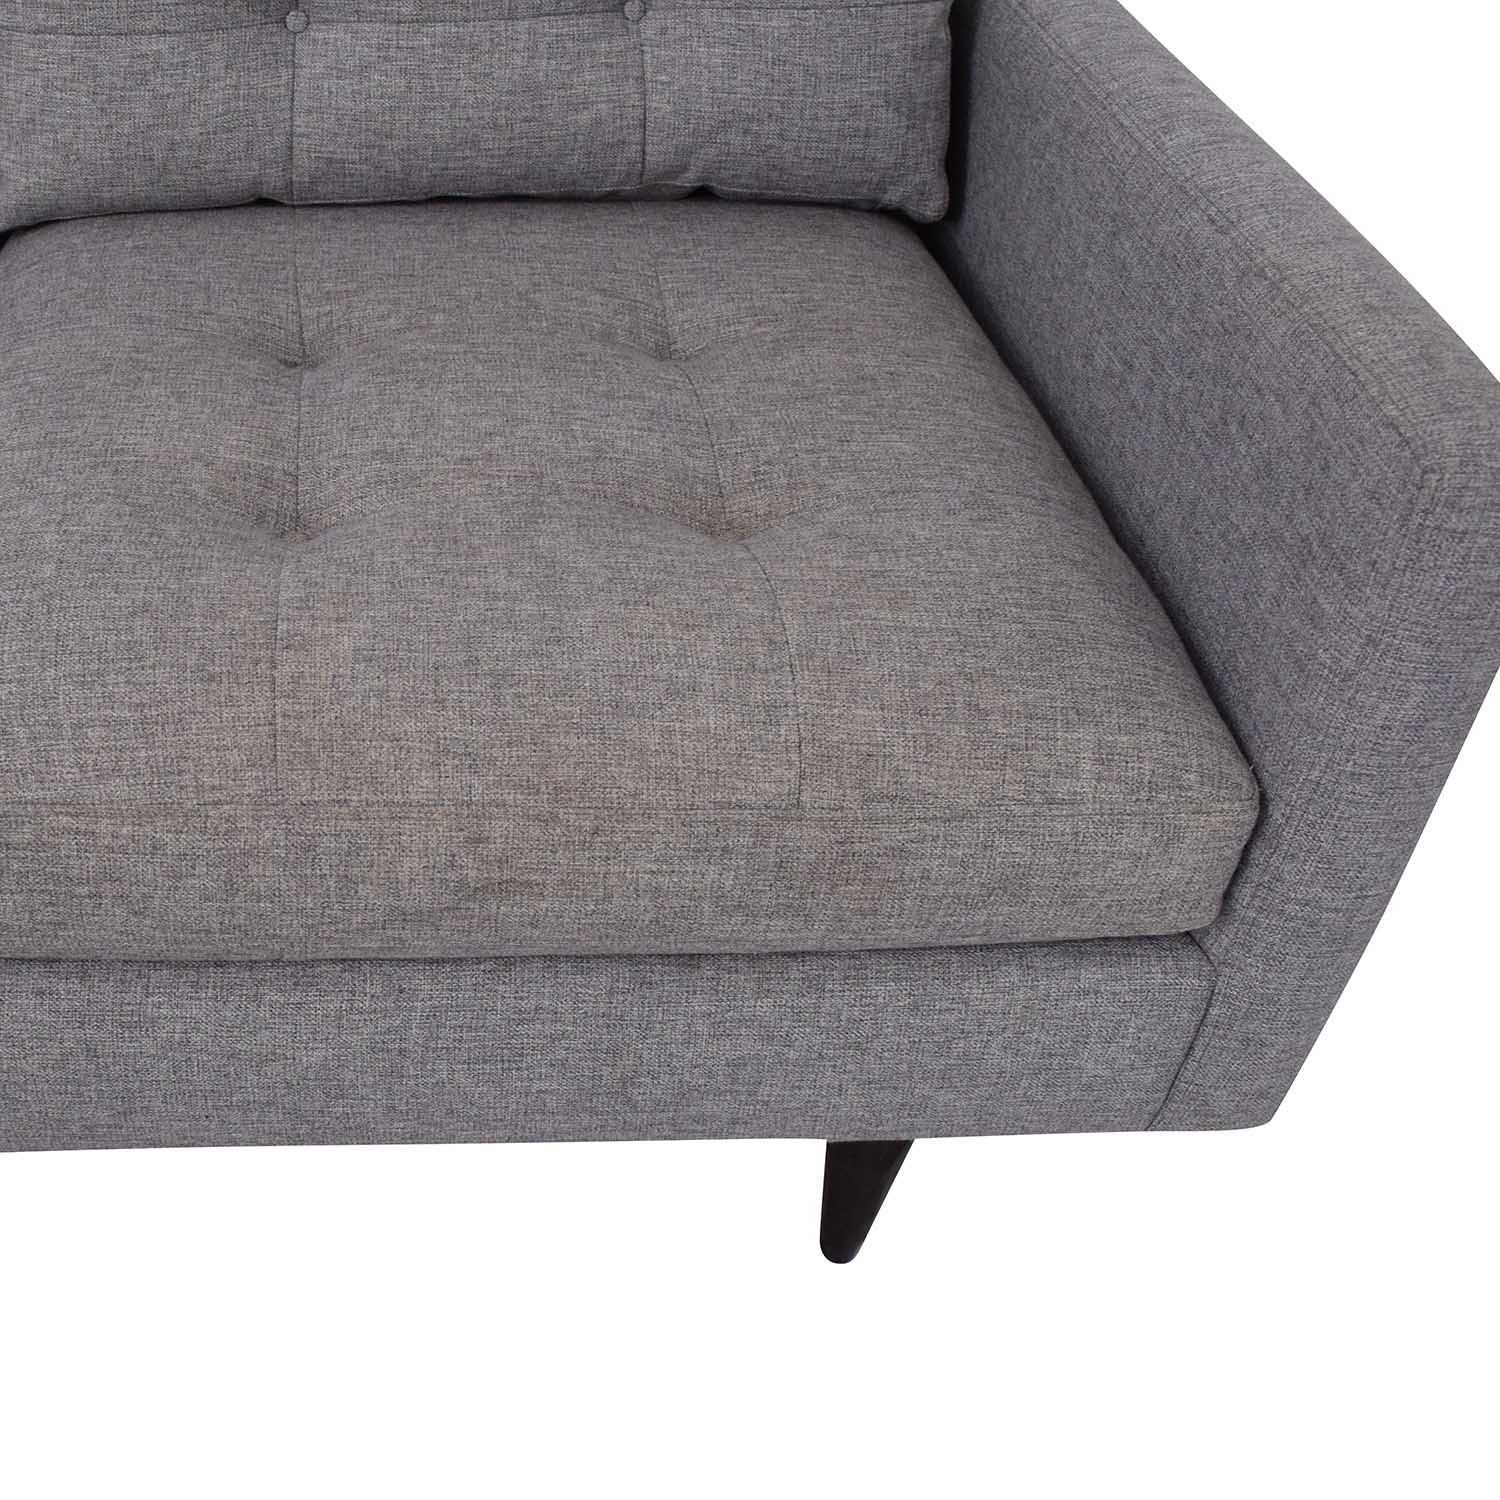 Crate & Barrel Crate & Barrel Petrie Mid Century Sectional Sofa with Chaise price